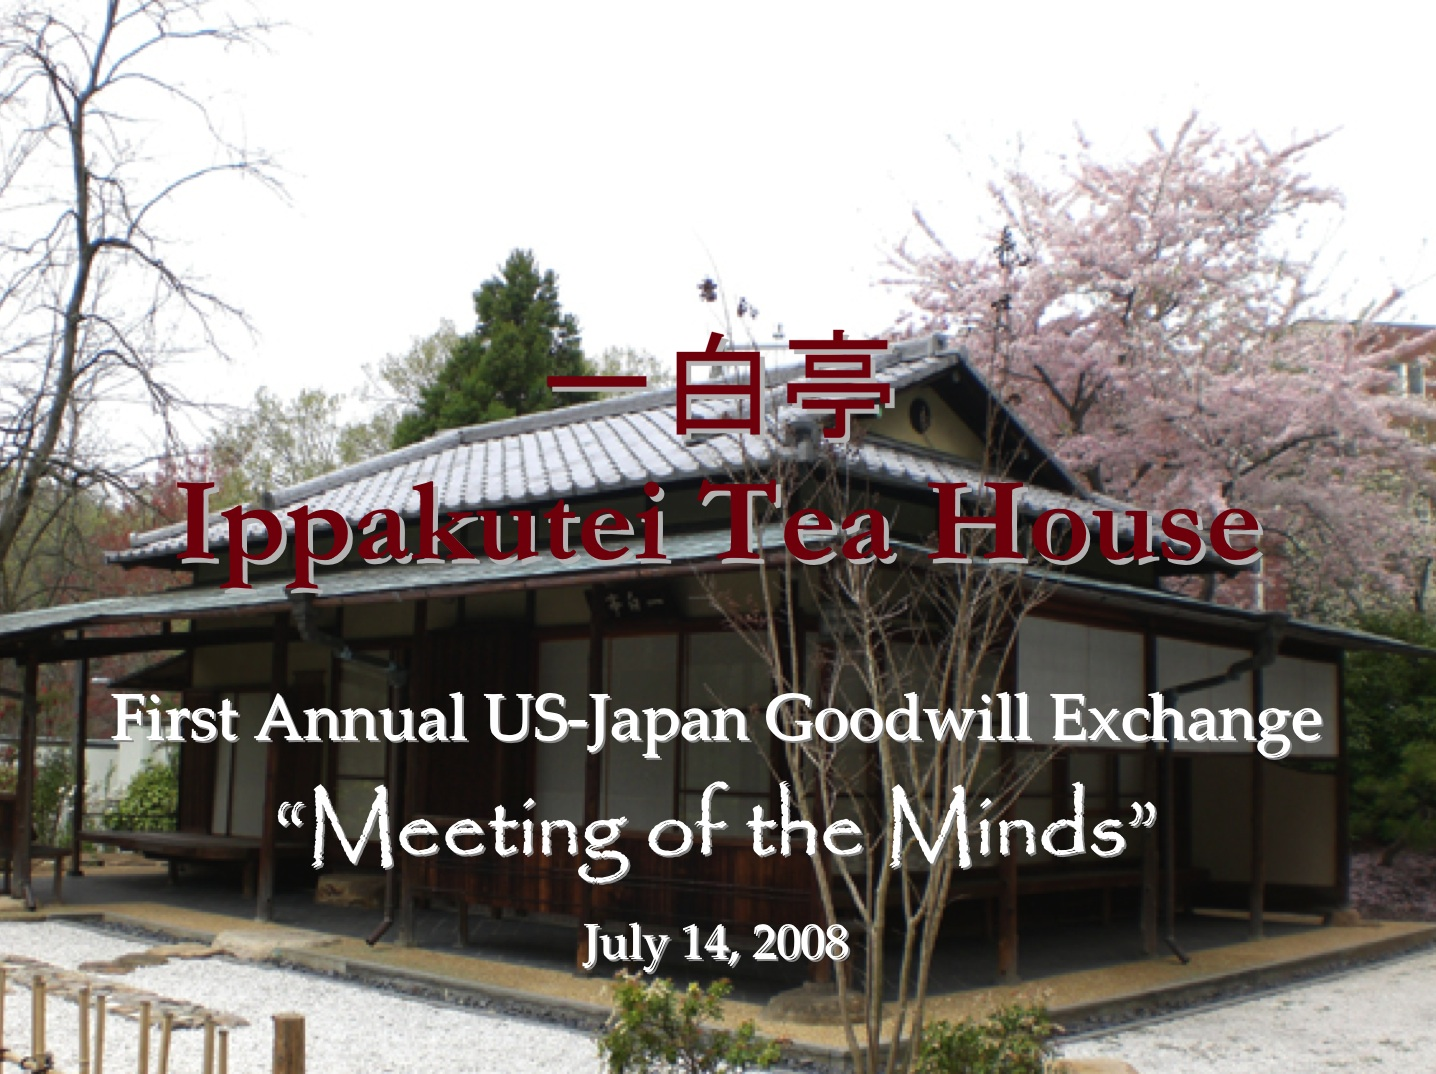 Ippakutei Tea House US Japan Conference